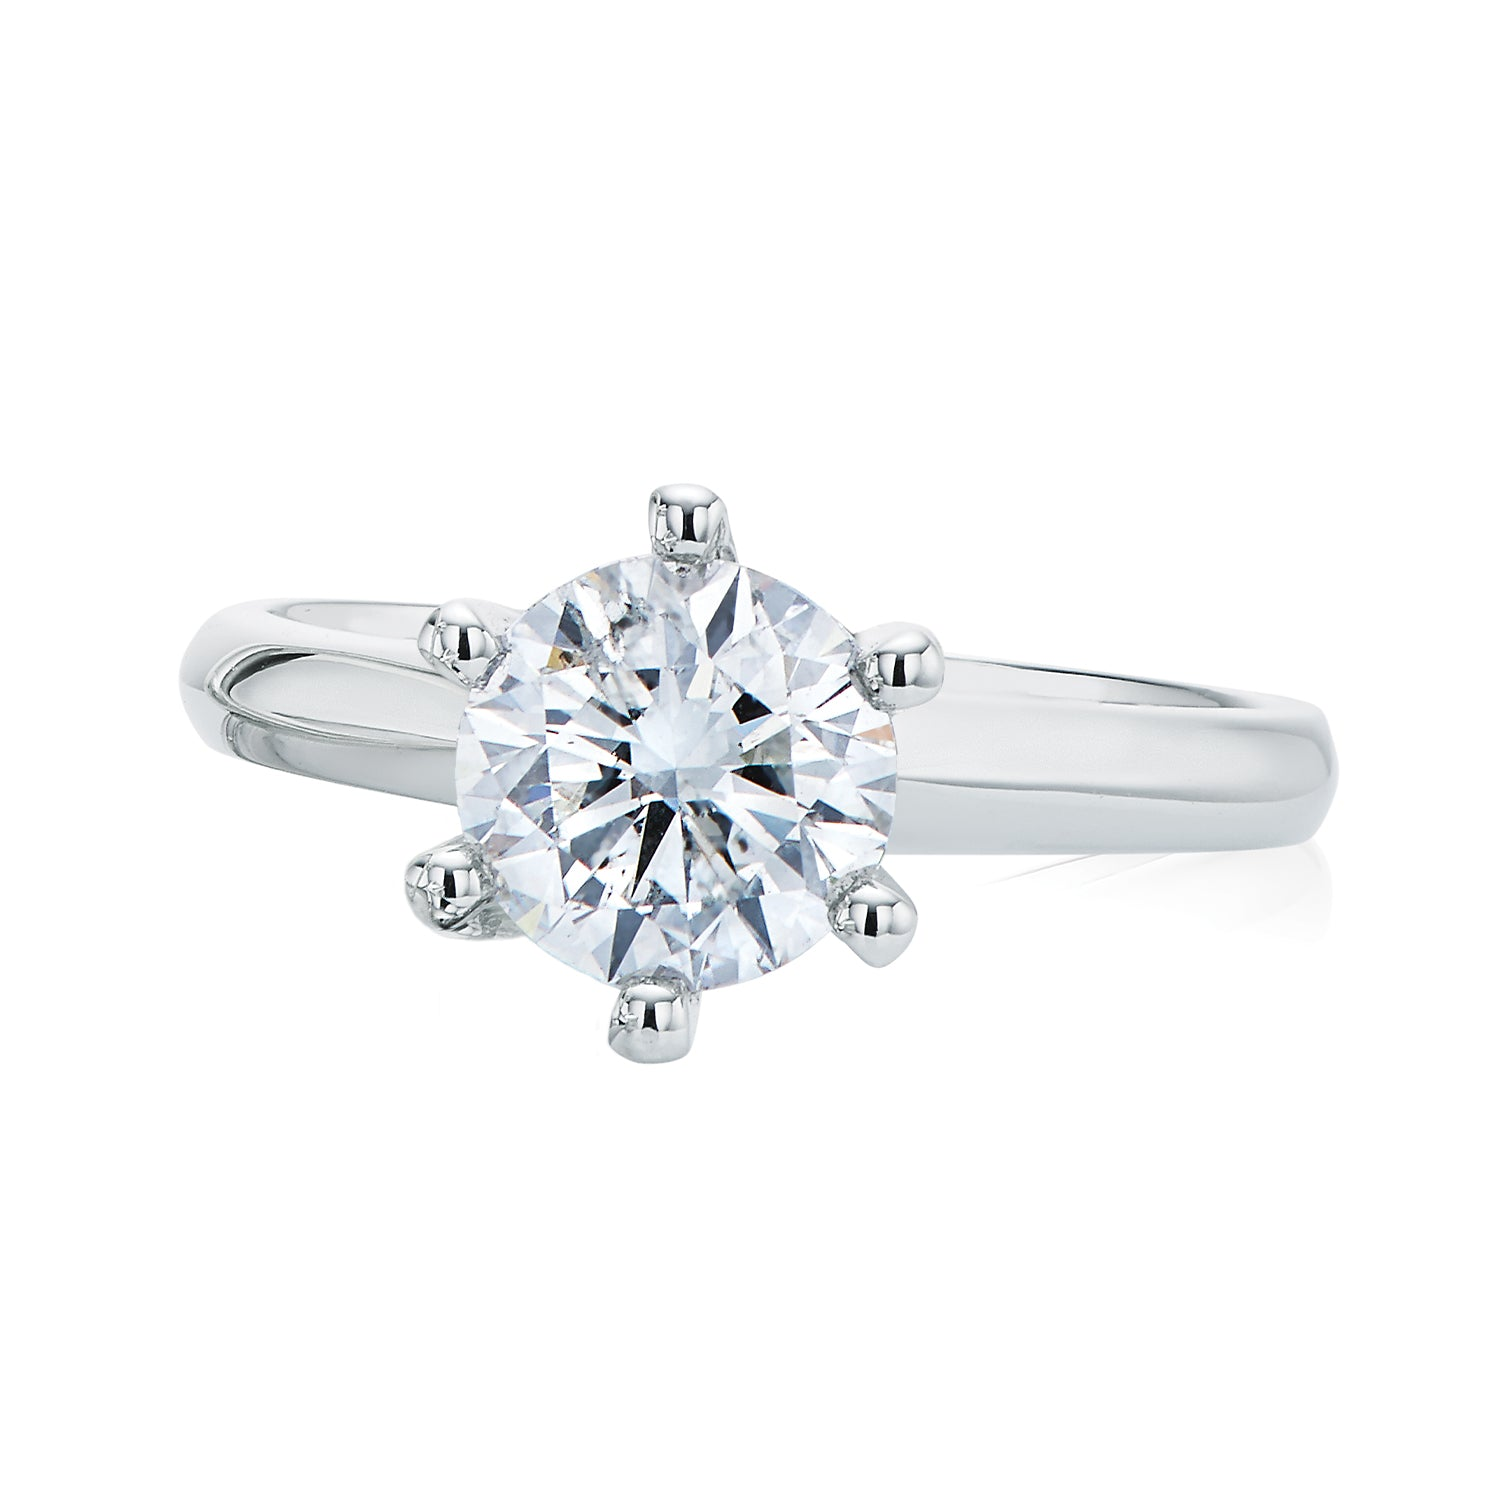 Promise 18ct White Gold Round Brilliant Cut with 1 1/2 CARAT of Diamonds